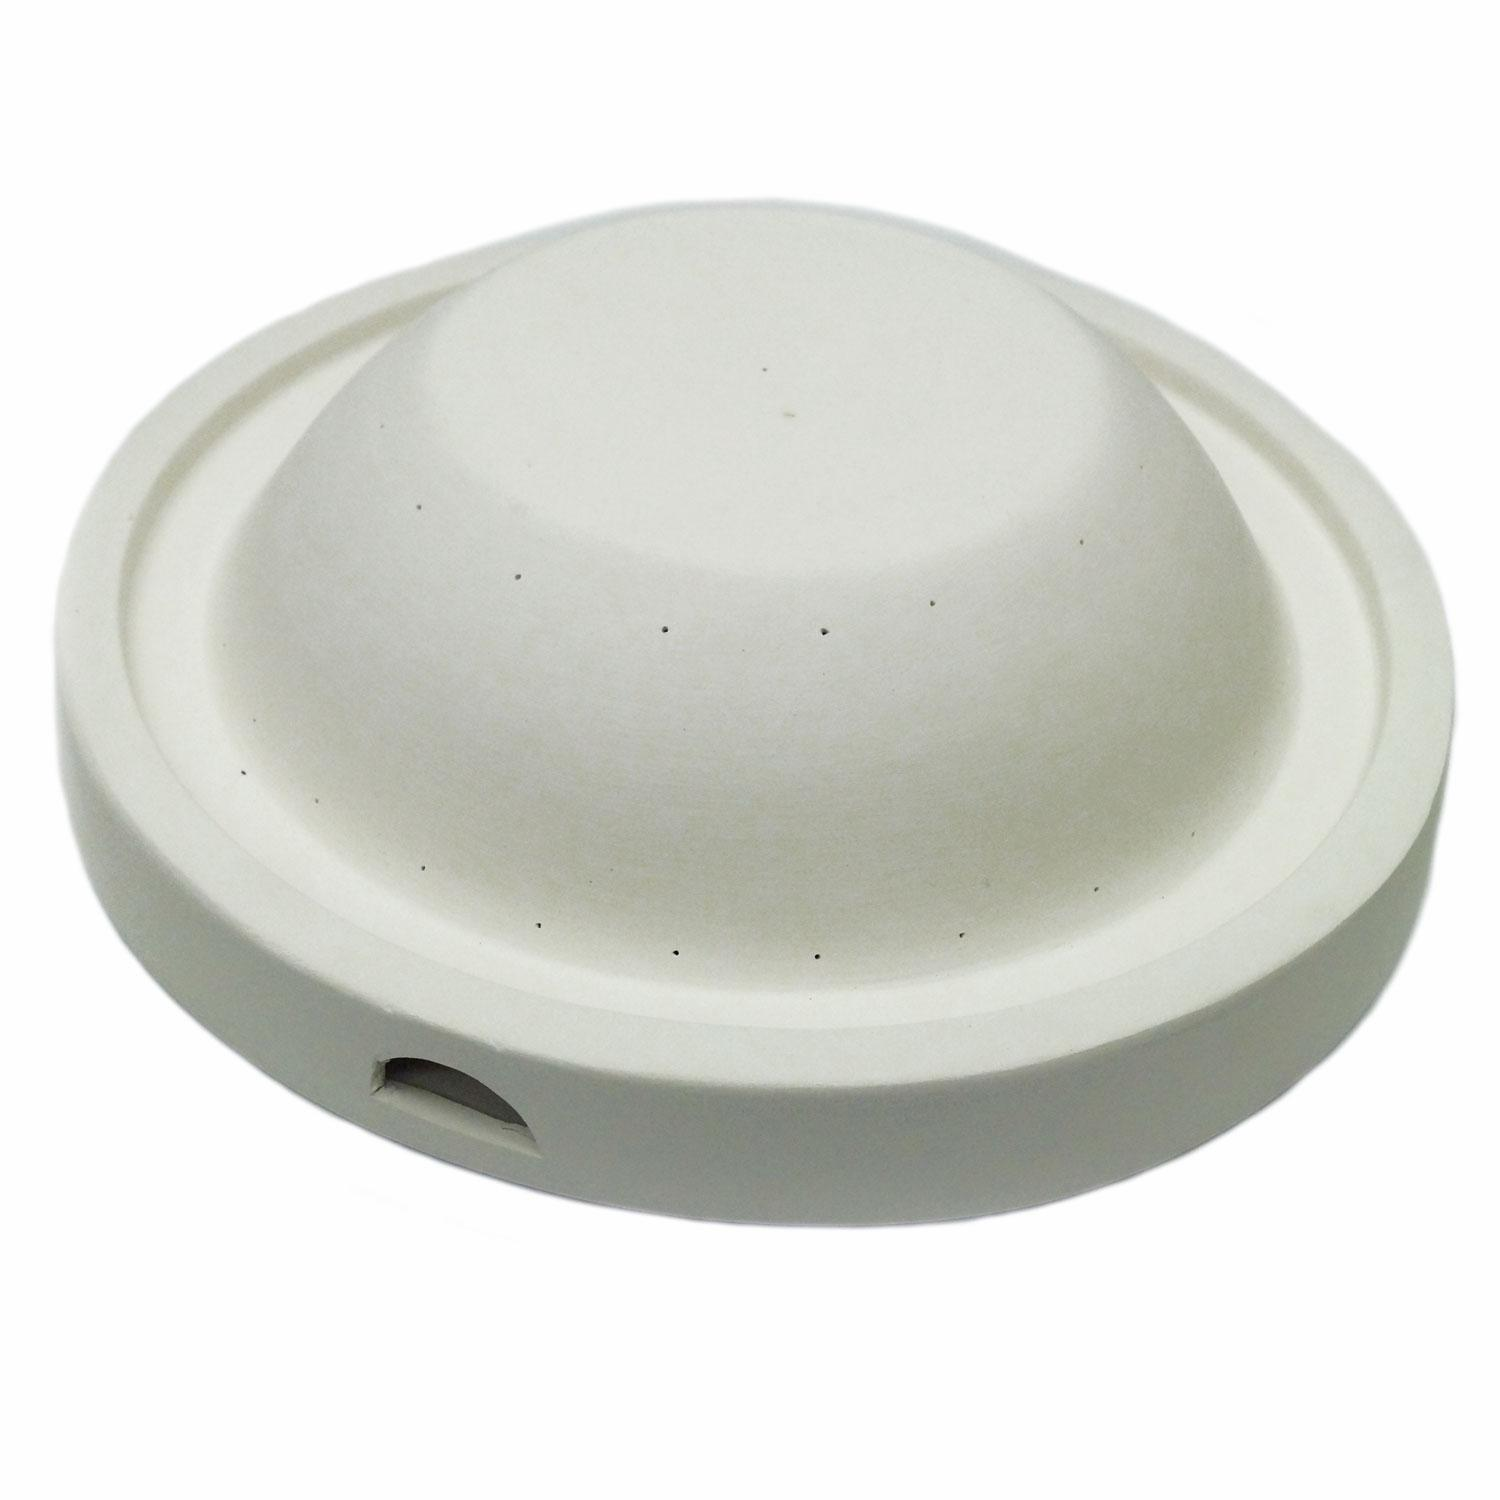 10 Rimmed Round Bowl Mold